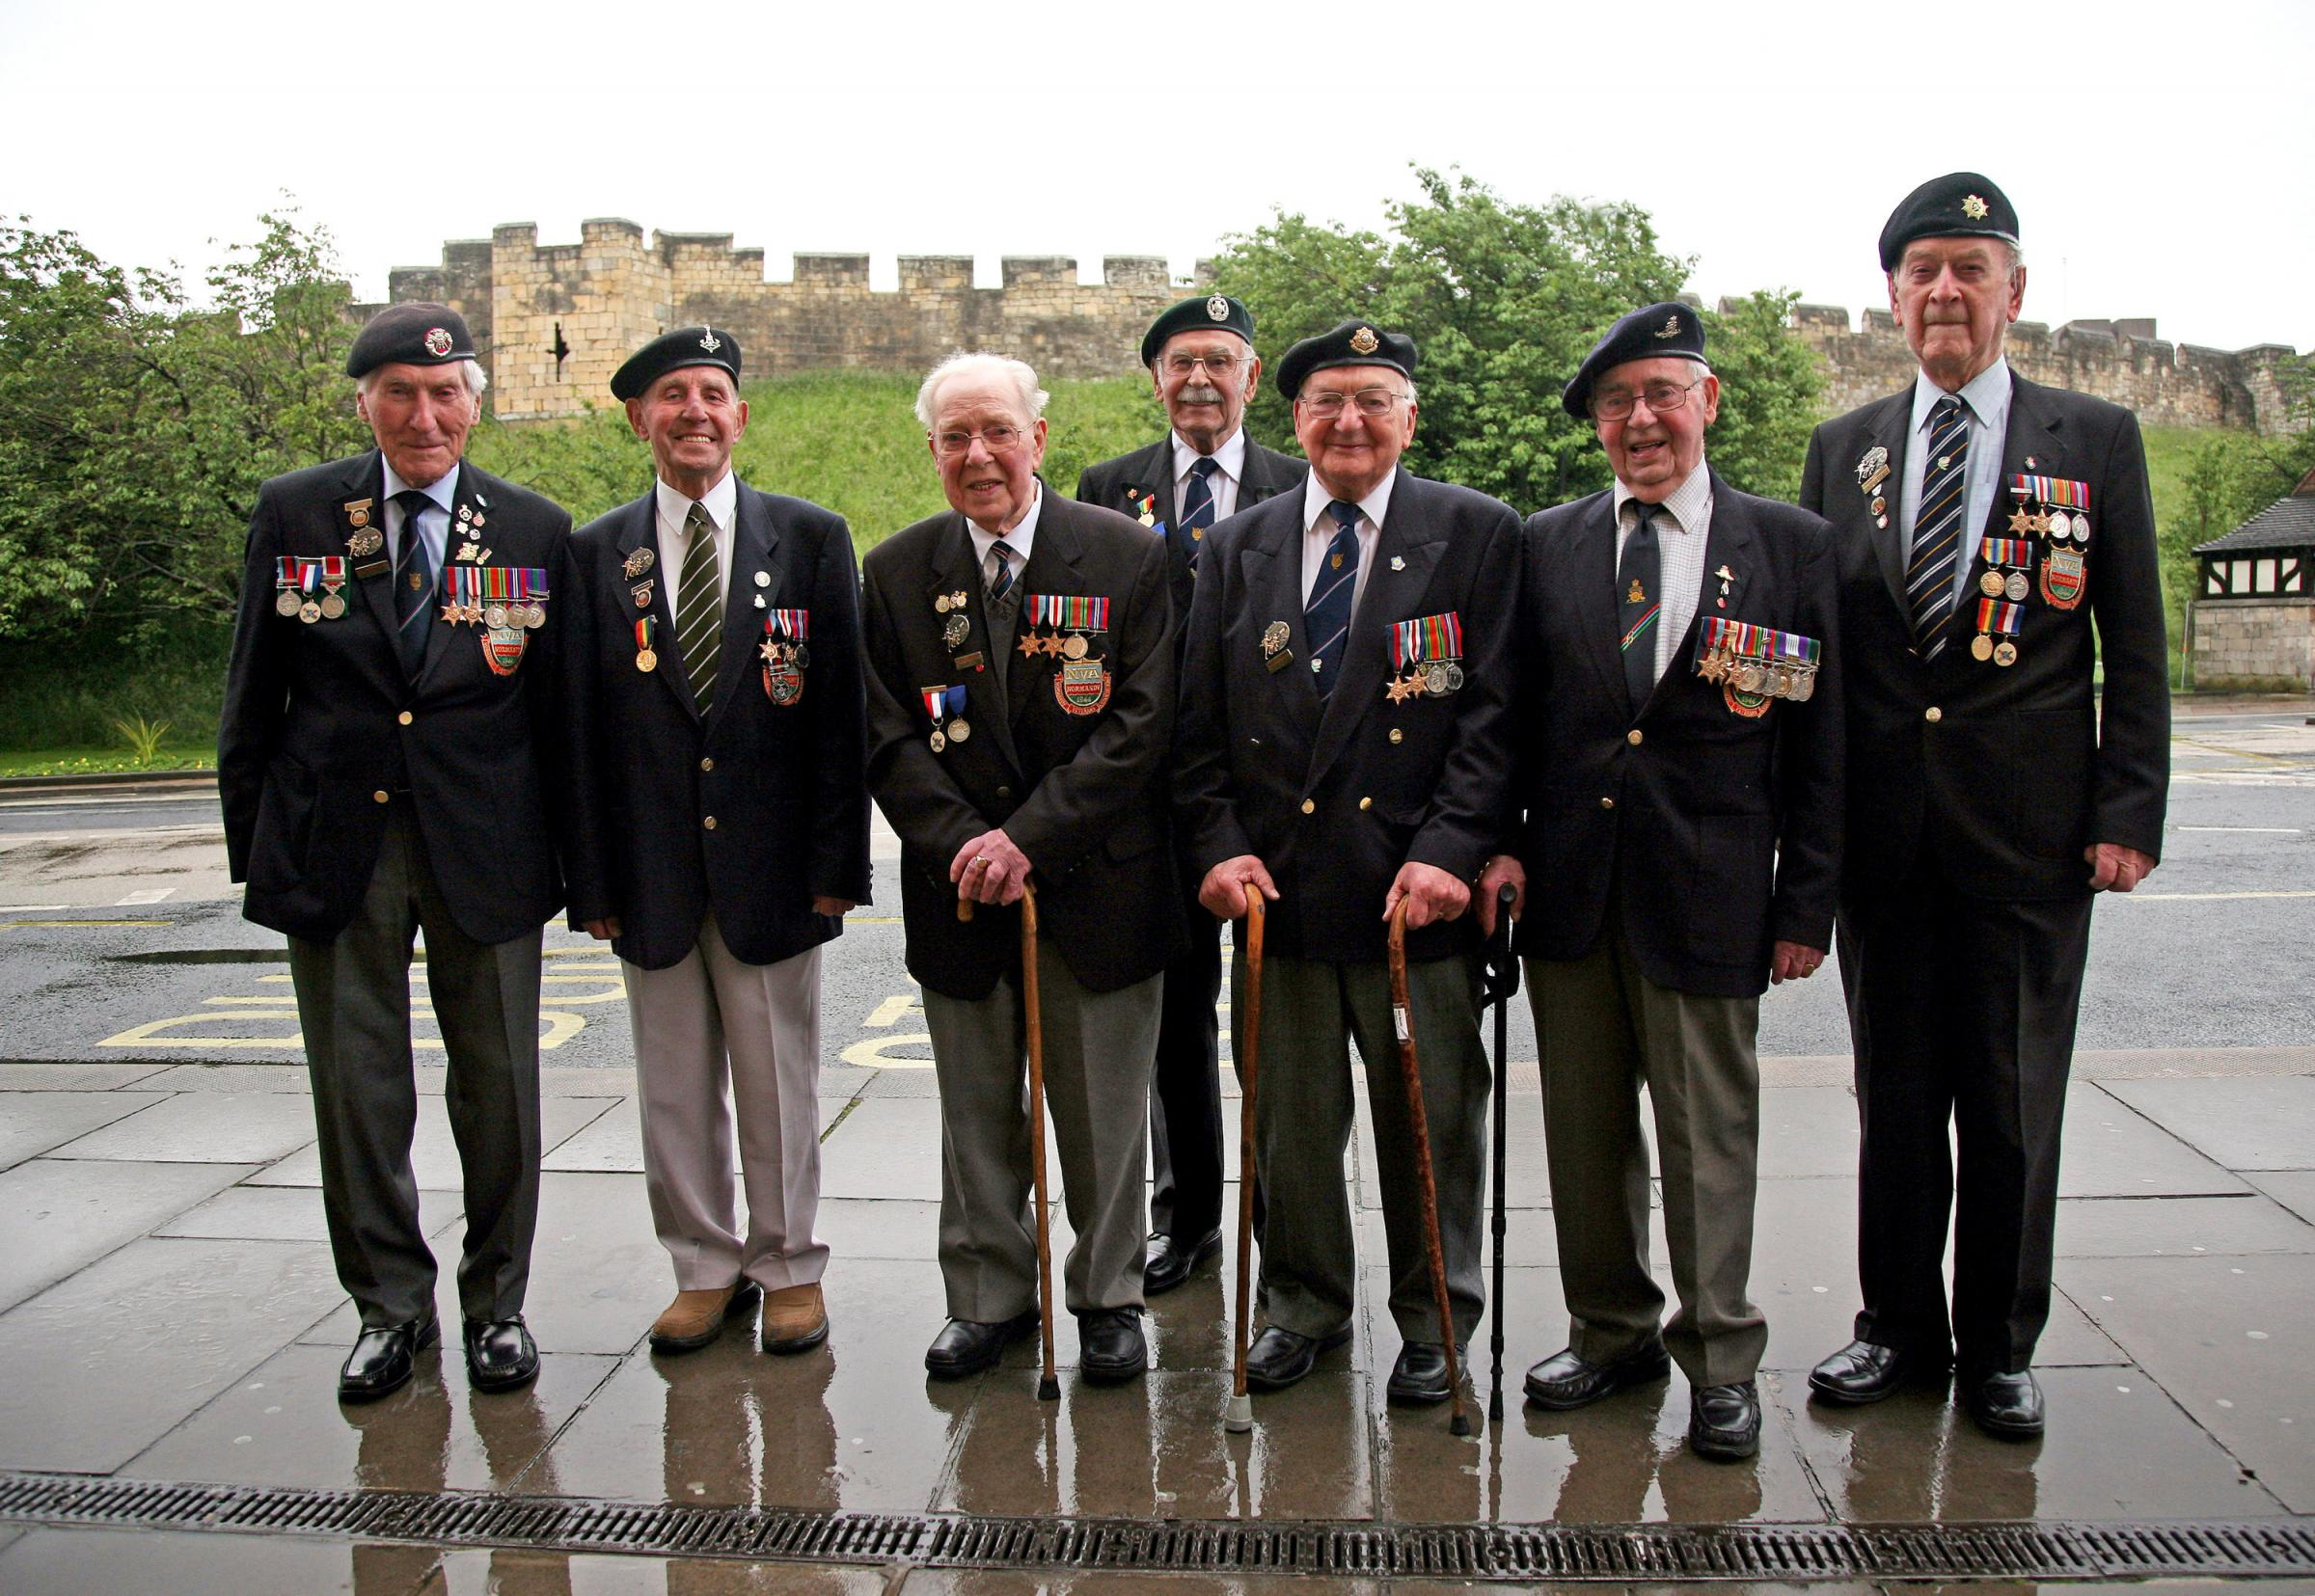 Men of the Normandy Veterans Association in York pictured before leaving for a D-Day Anniversary tour last weekend